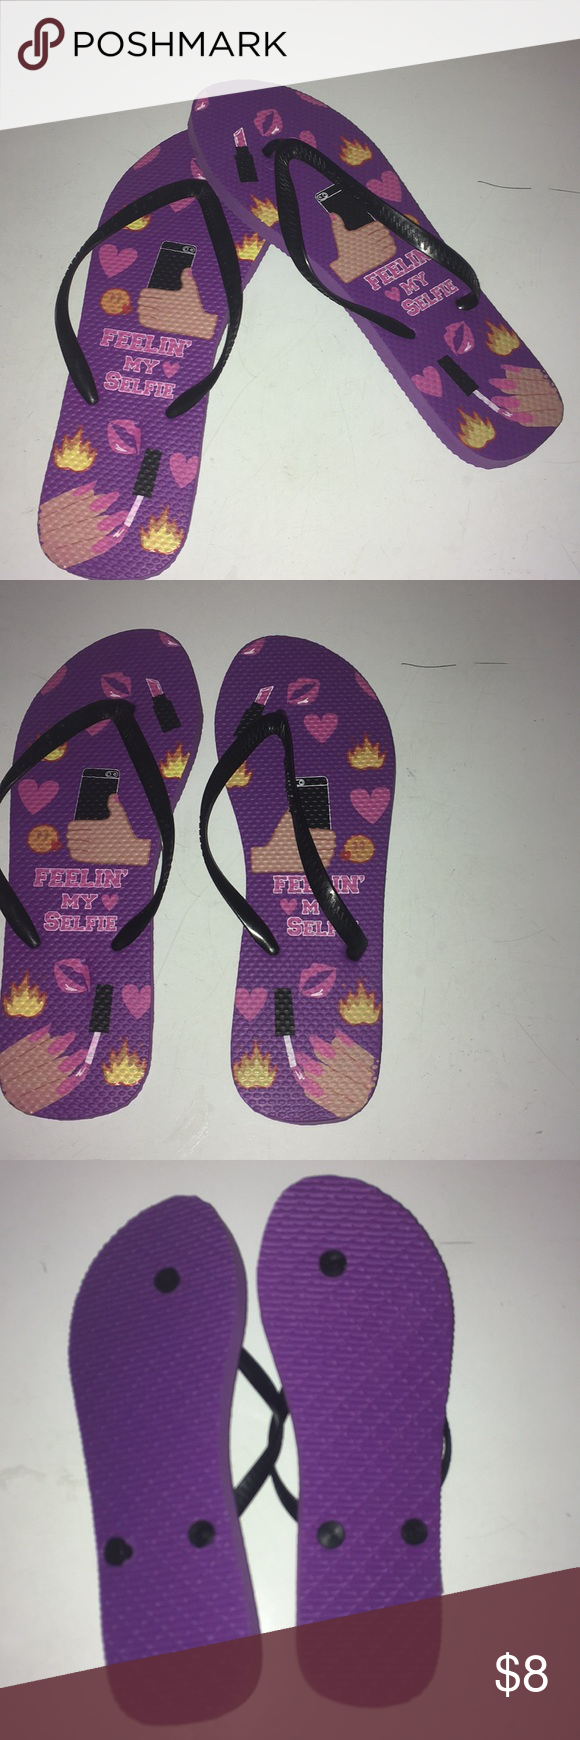 "af894e01331522 Chatties Flip Flops Chatties flip flops with logo ""Feelin My Selfie"" in a  size 10 1 2 which is equivalent to large. Brand new without tags and never  worn."